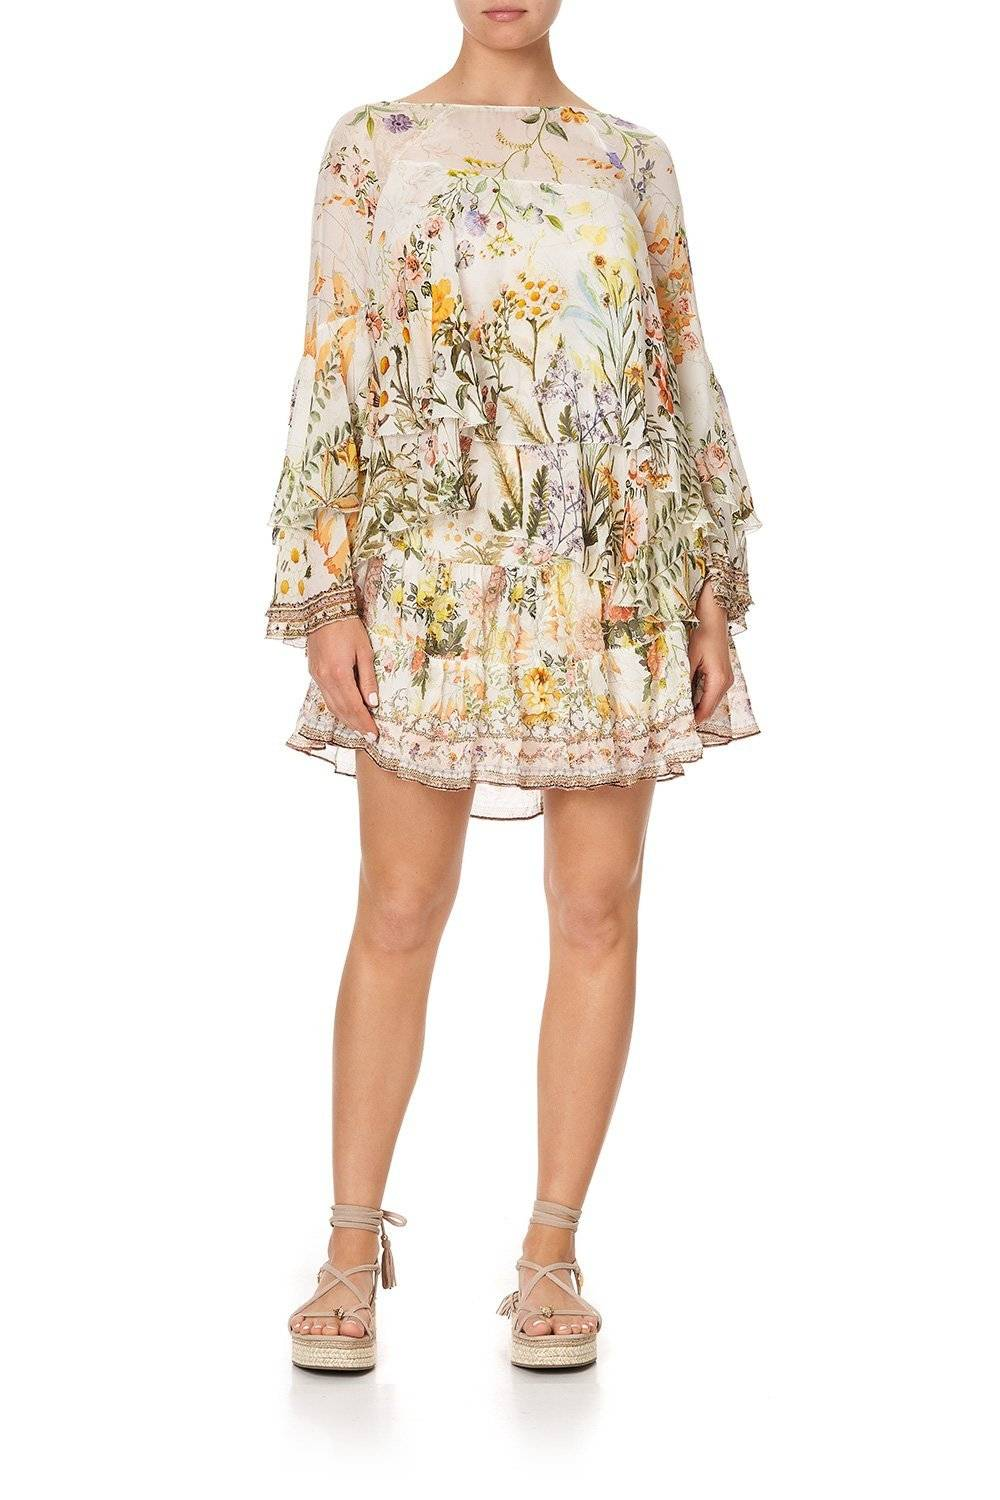 CAMILLA cream, yellow and green floral blouse with skirt